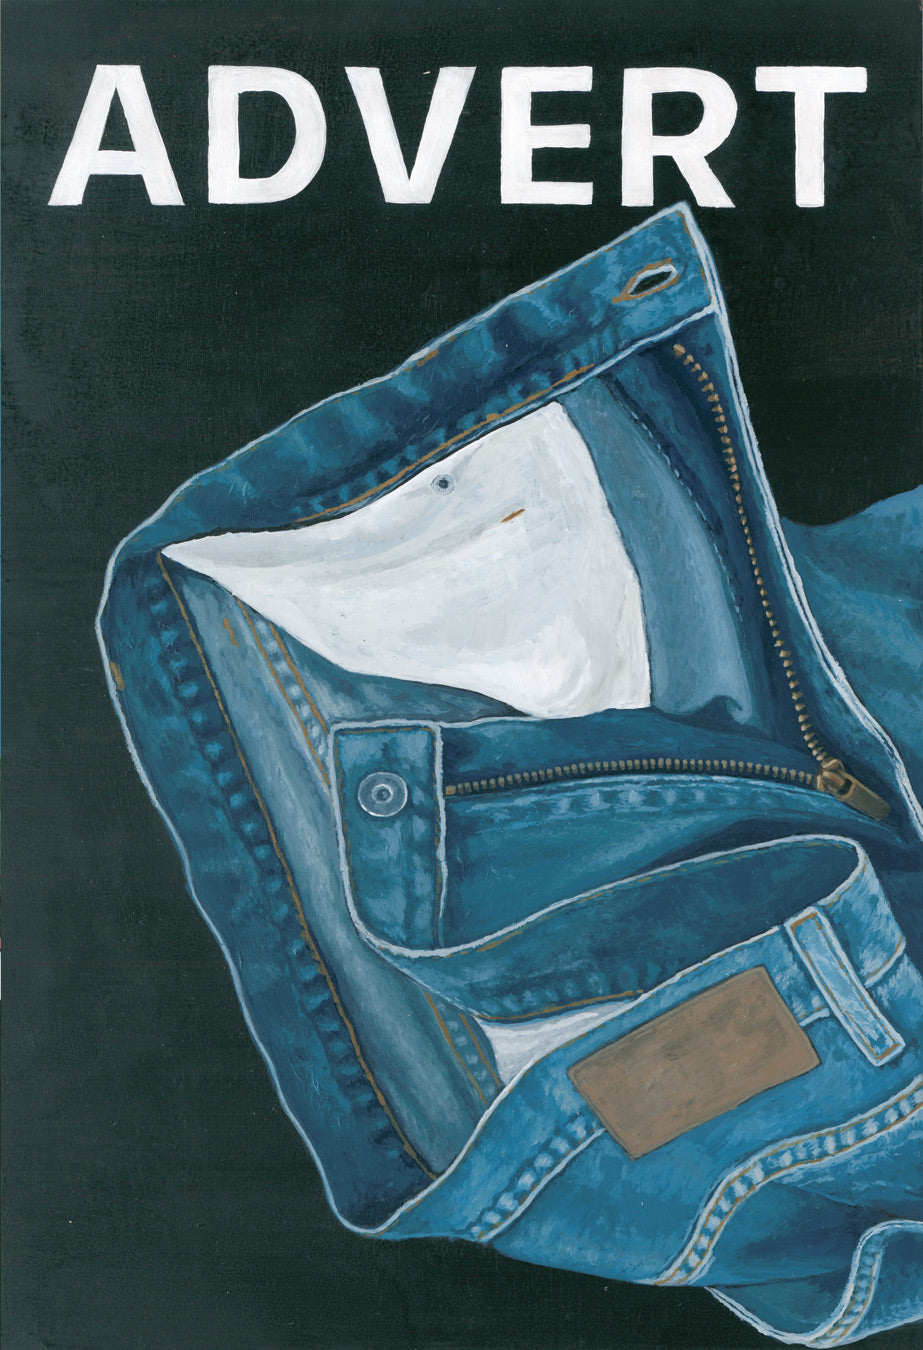 Josh Galletly Art. Painitng of an advert for a pair of unbranded denim jeans. Acrylic on Plywood 285 x 417mm